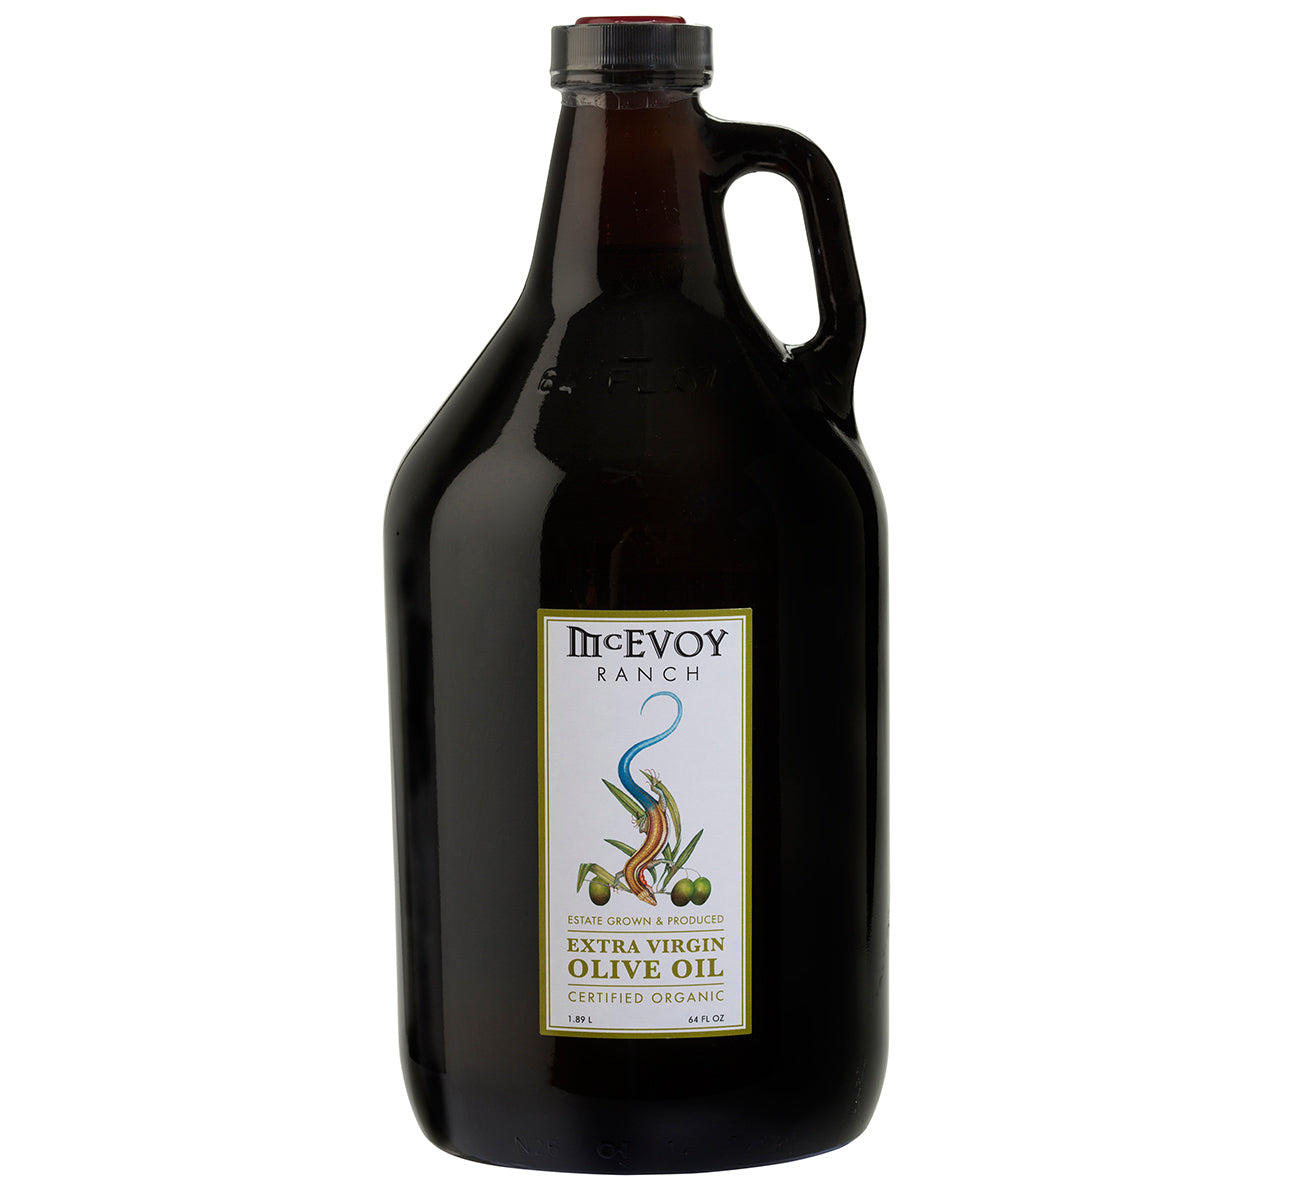 Traditional Blend Half Gallon Extra Virgin Olive Oil from McEvoy Ranch